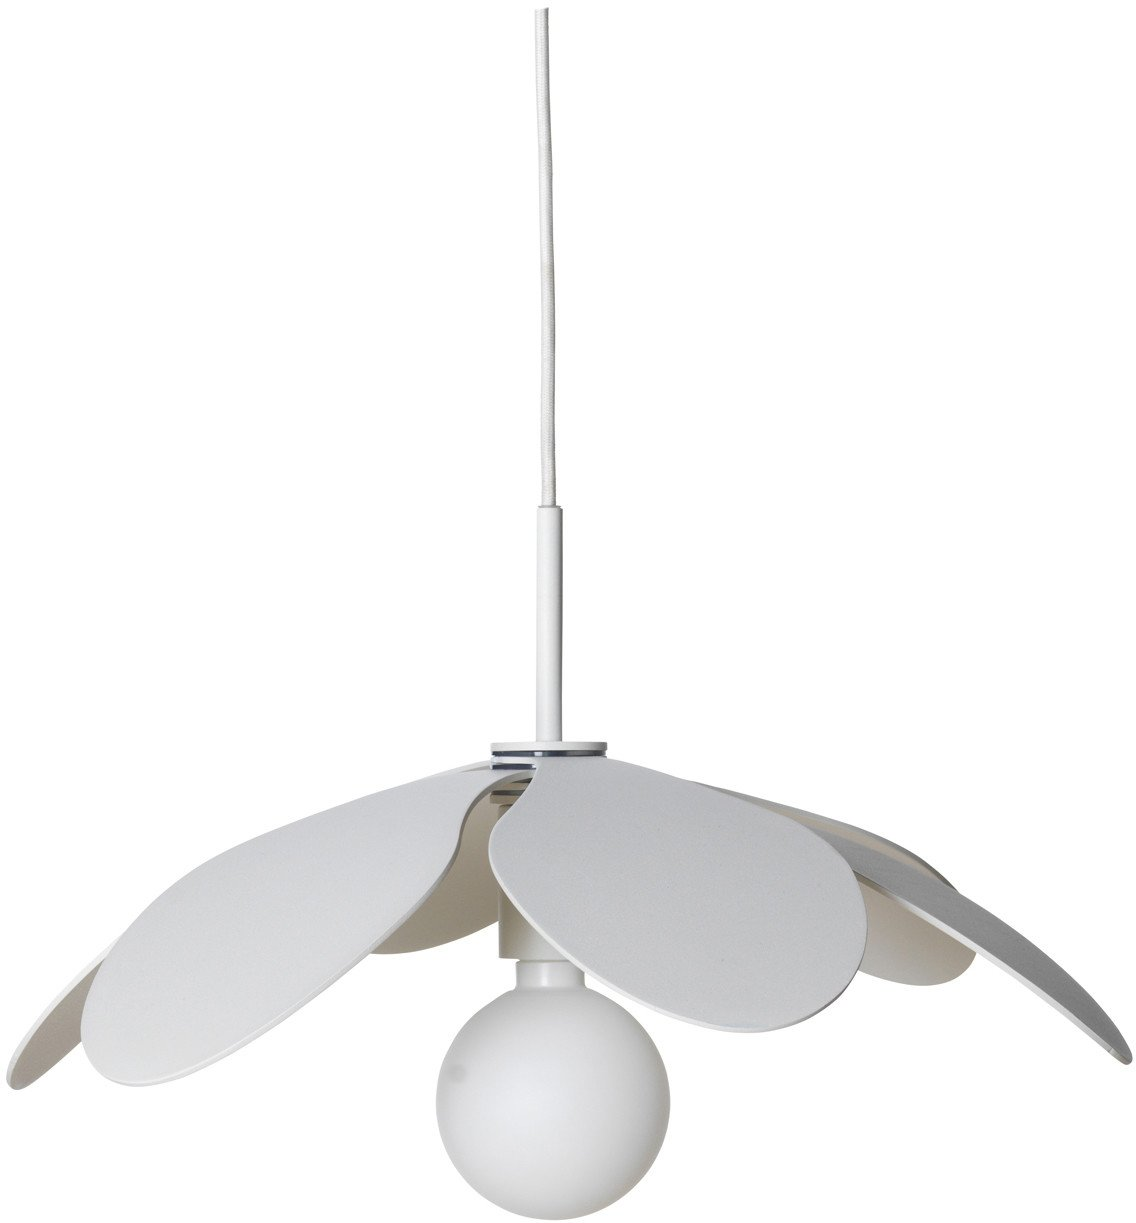 Bloom Pendant Lamp White 50 by M. Mulder for Pholc